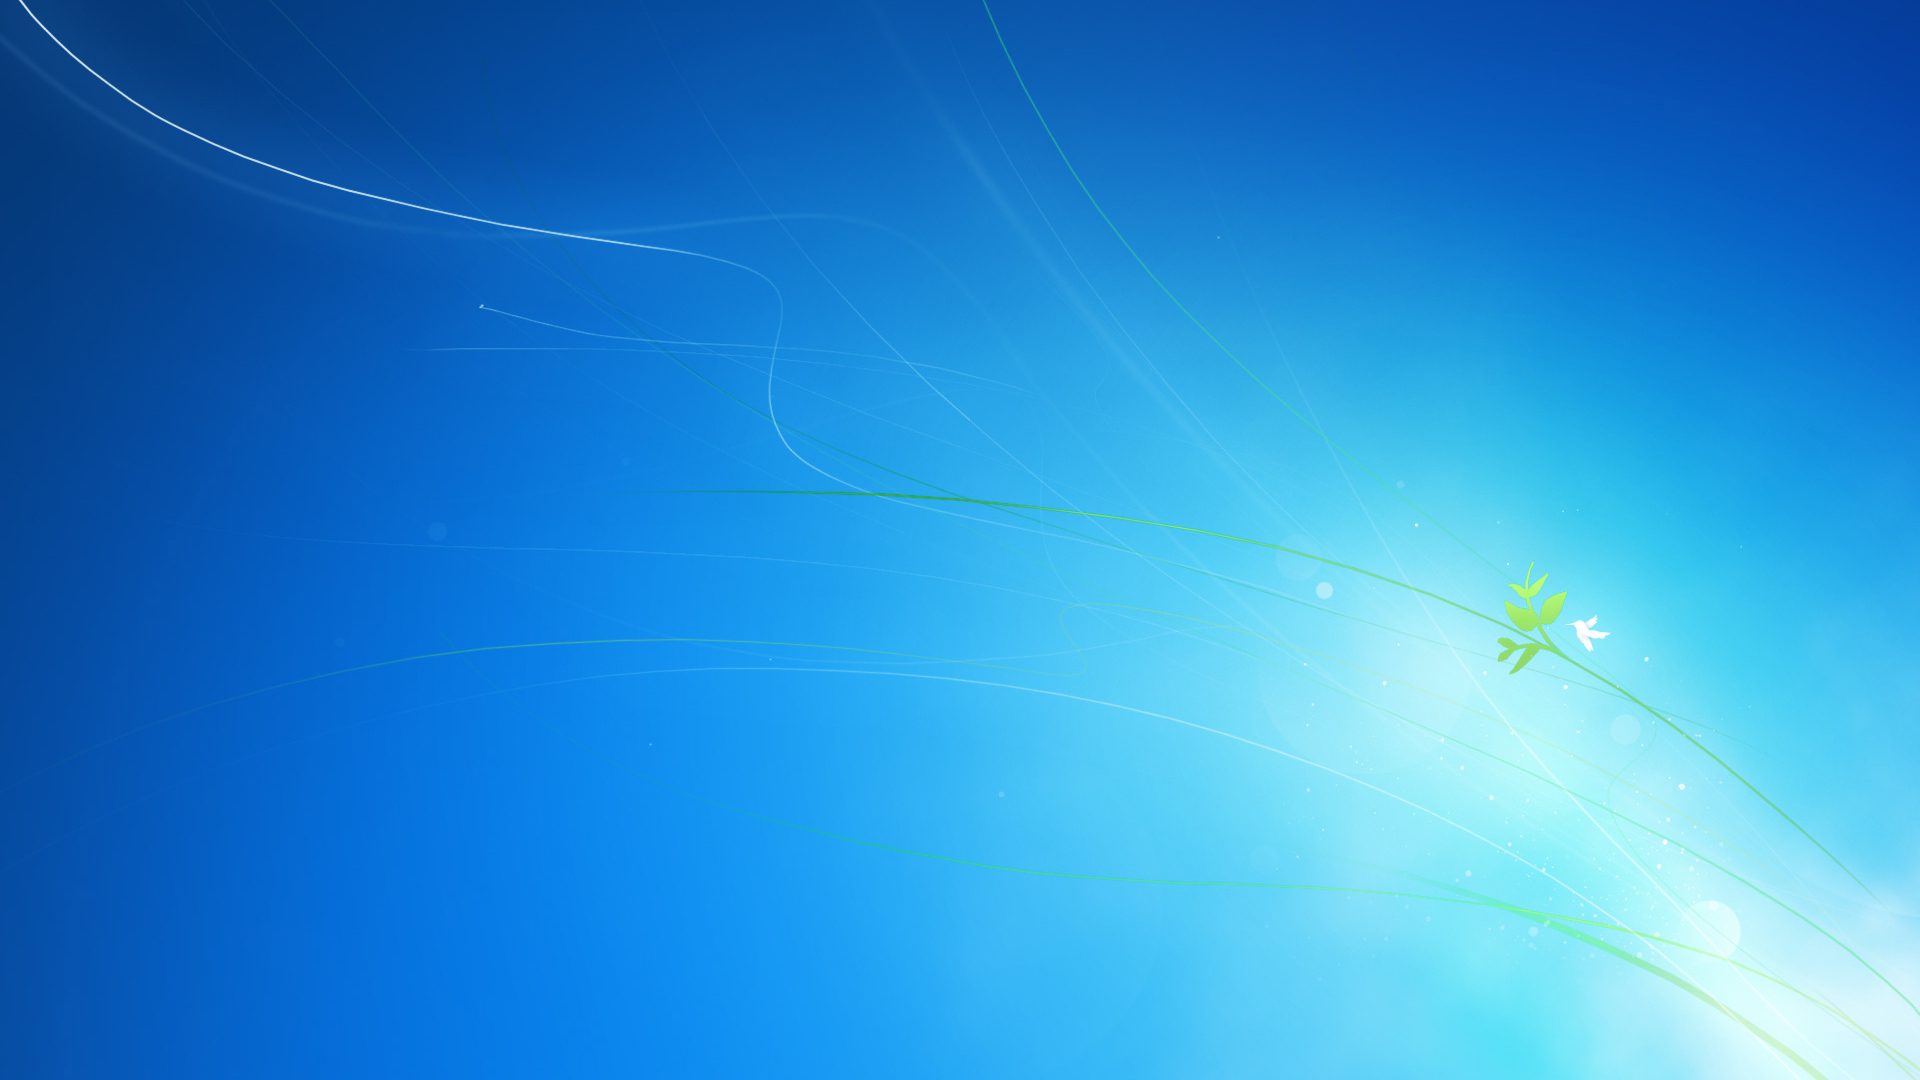 Free Download Windows 7 Original Wallpapers Hd Wallpapers